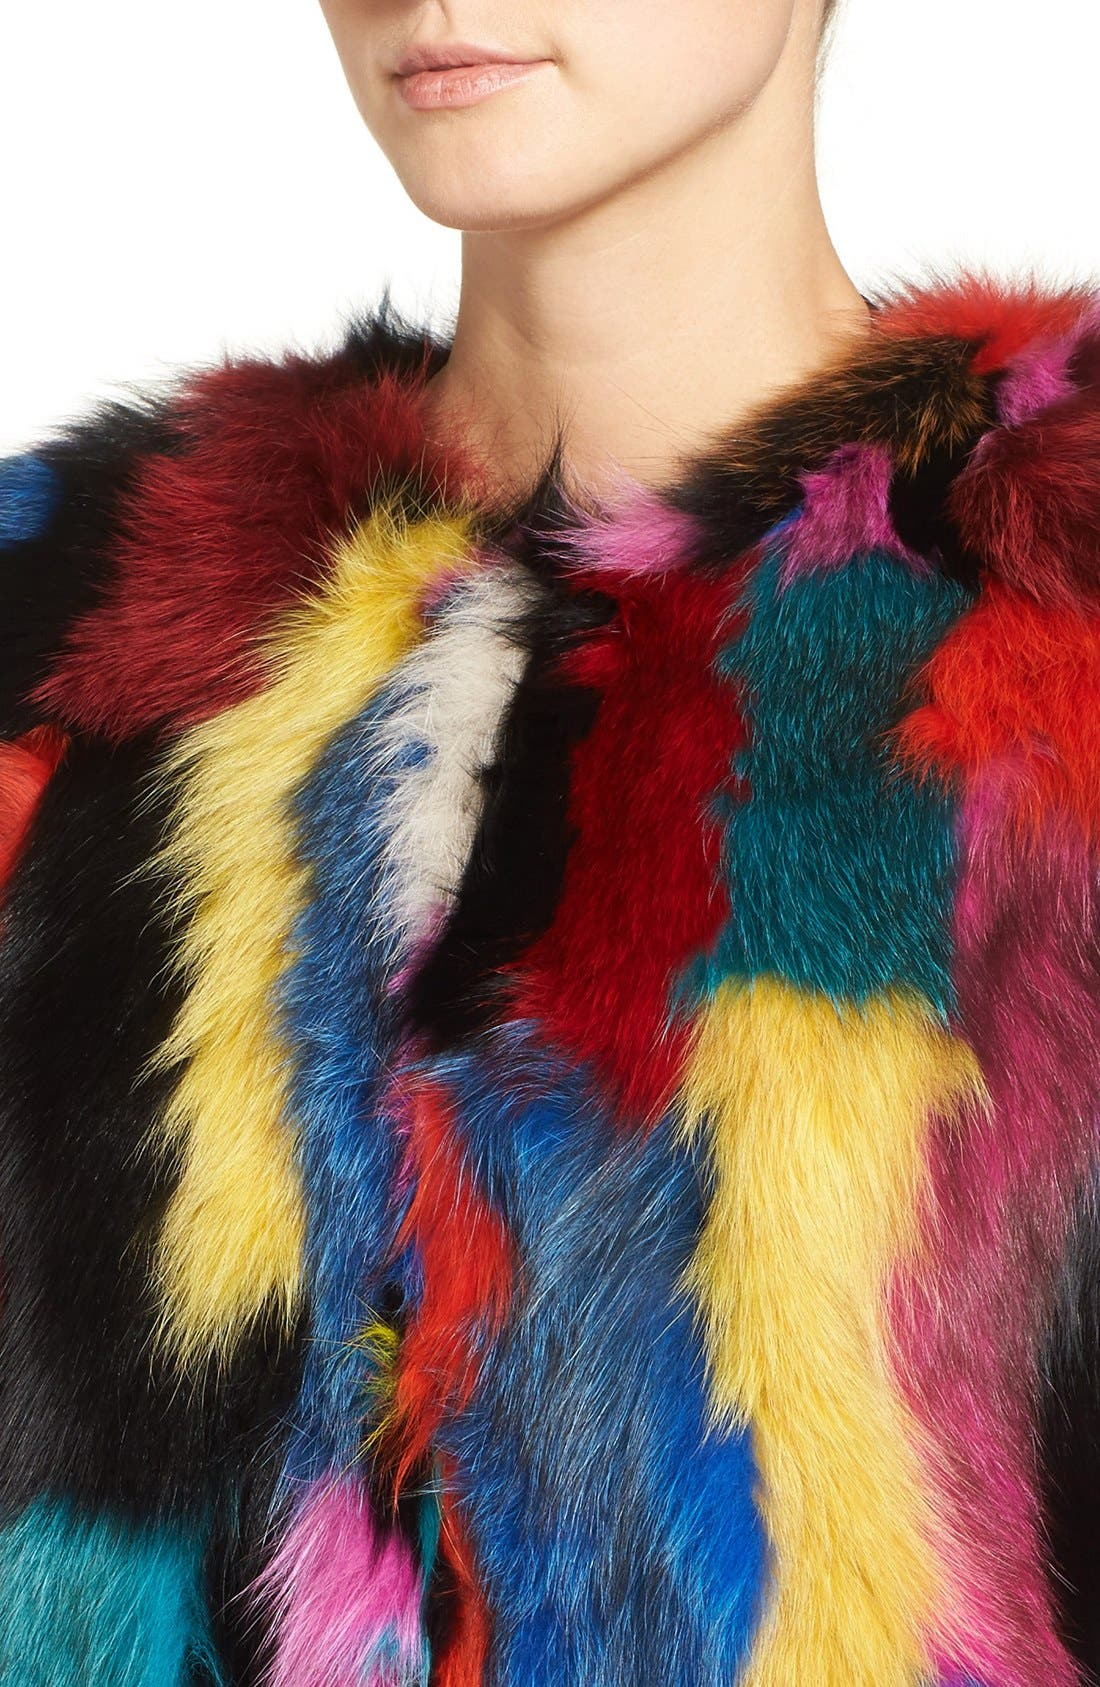 Marmalade Patchwork Genuine Fox Fur Coat,                             Alternate thumbnail 3, color,                             400